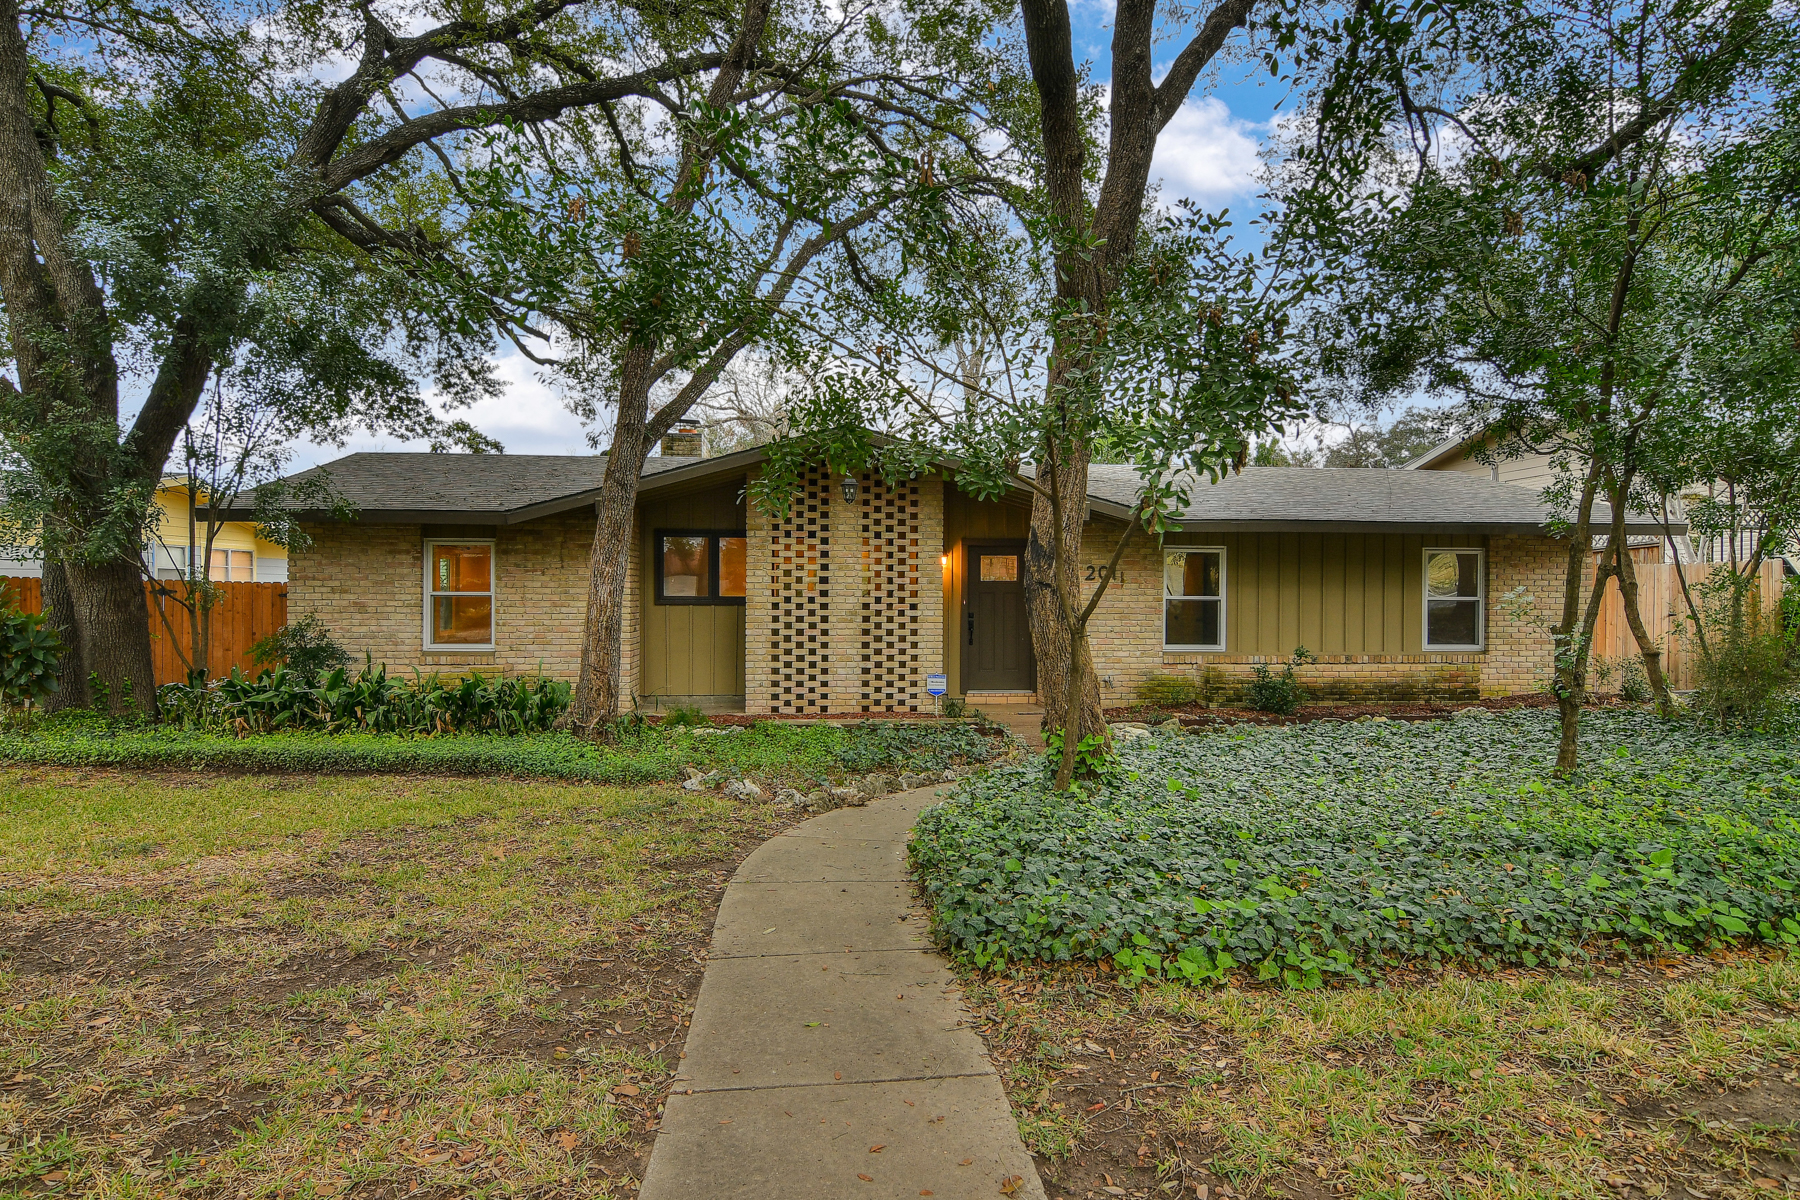 Single Family Home for Rent at Gorgeous Rental in Lincoln Heights 2011 Flamingo Dr San Antonio, Texas 78209 United States